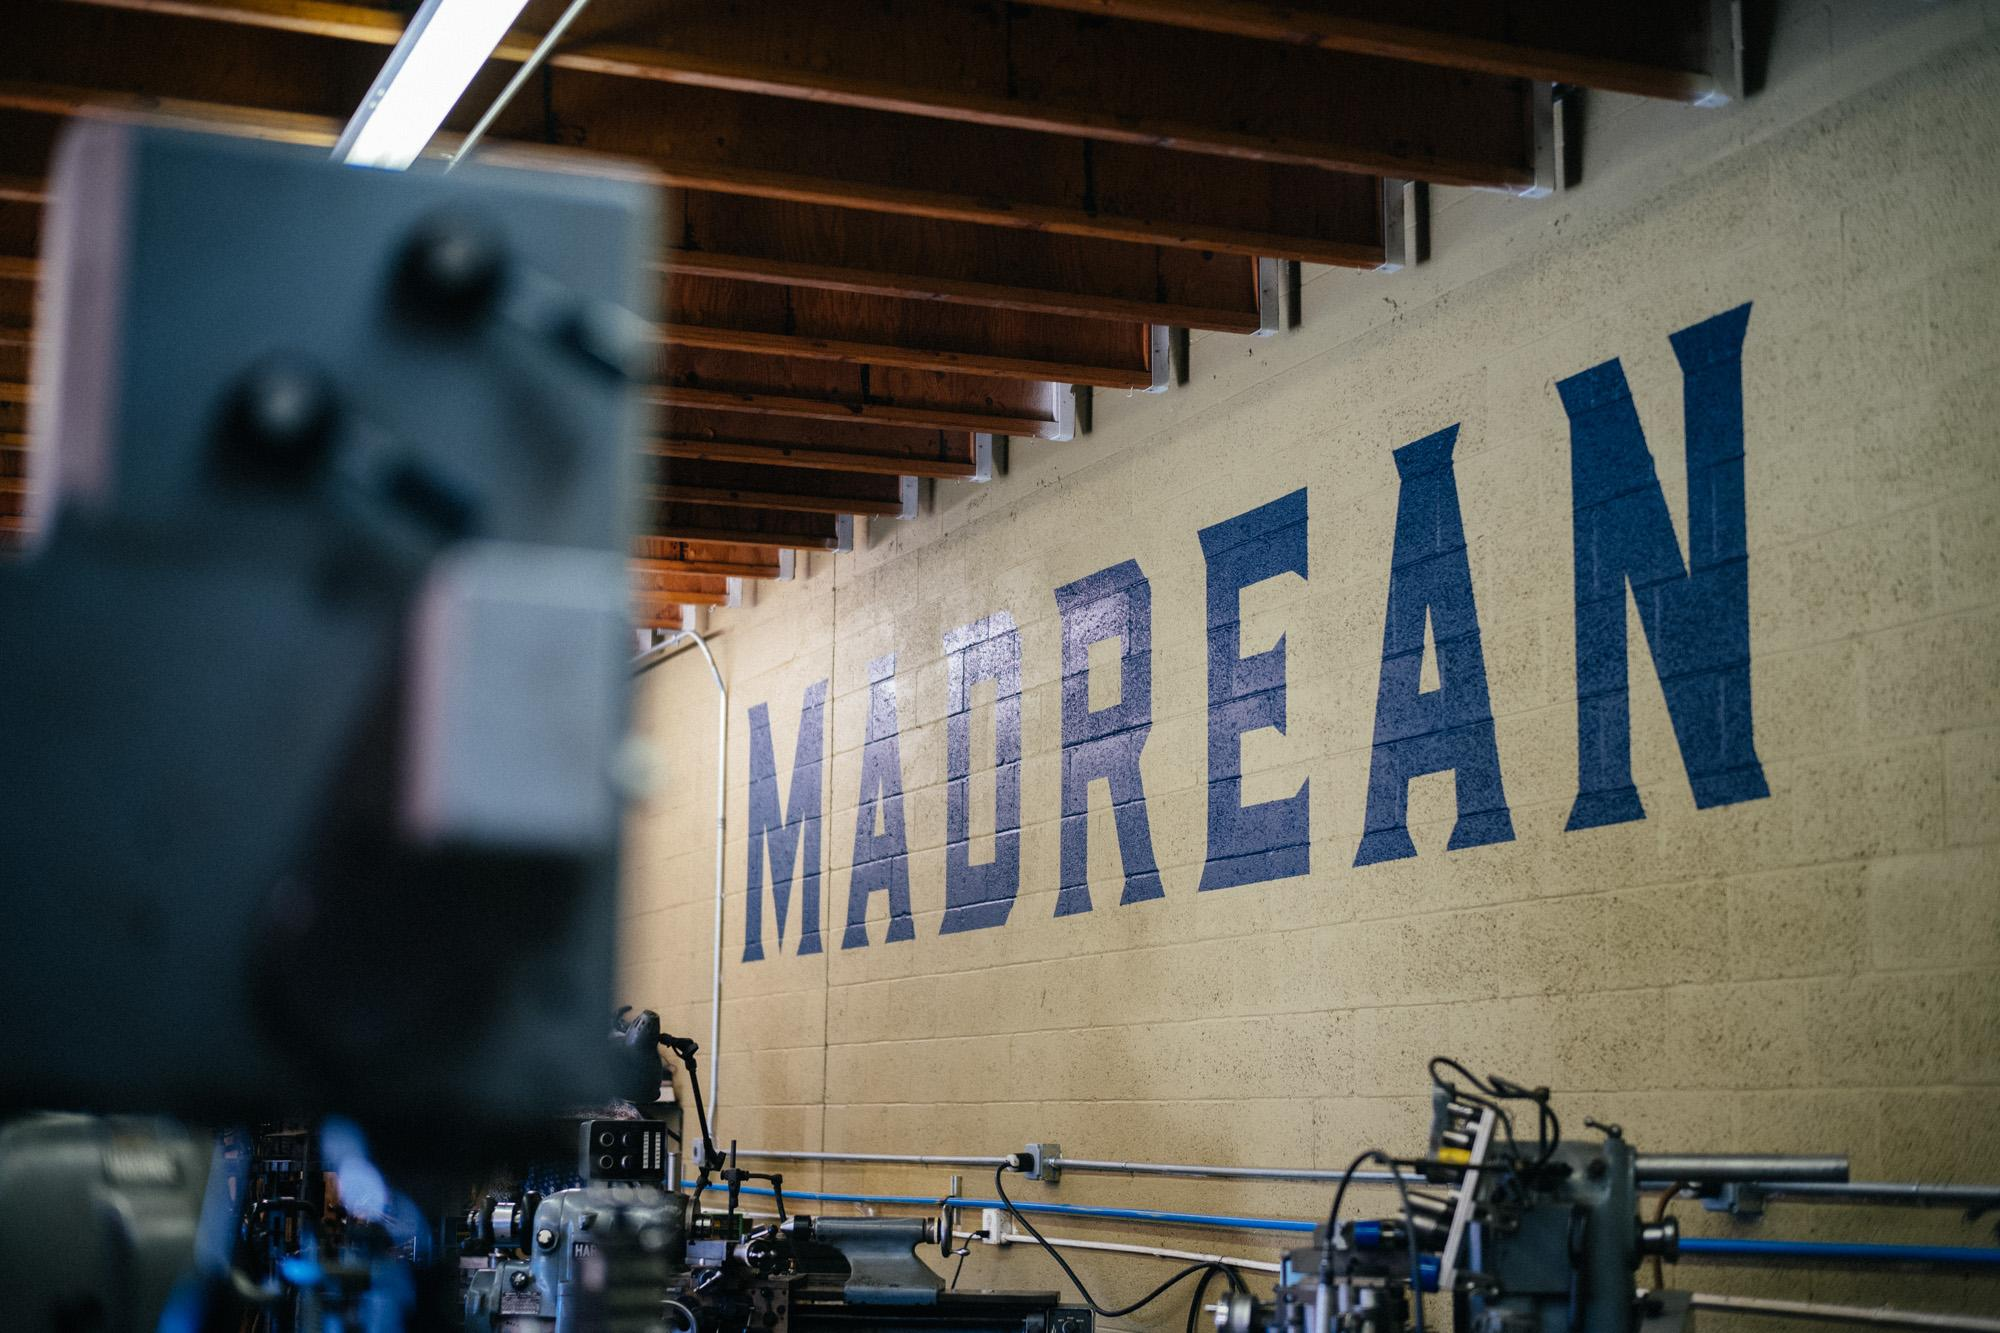 Inside Hubert D'Autremont's Madrean Fabrication